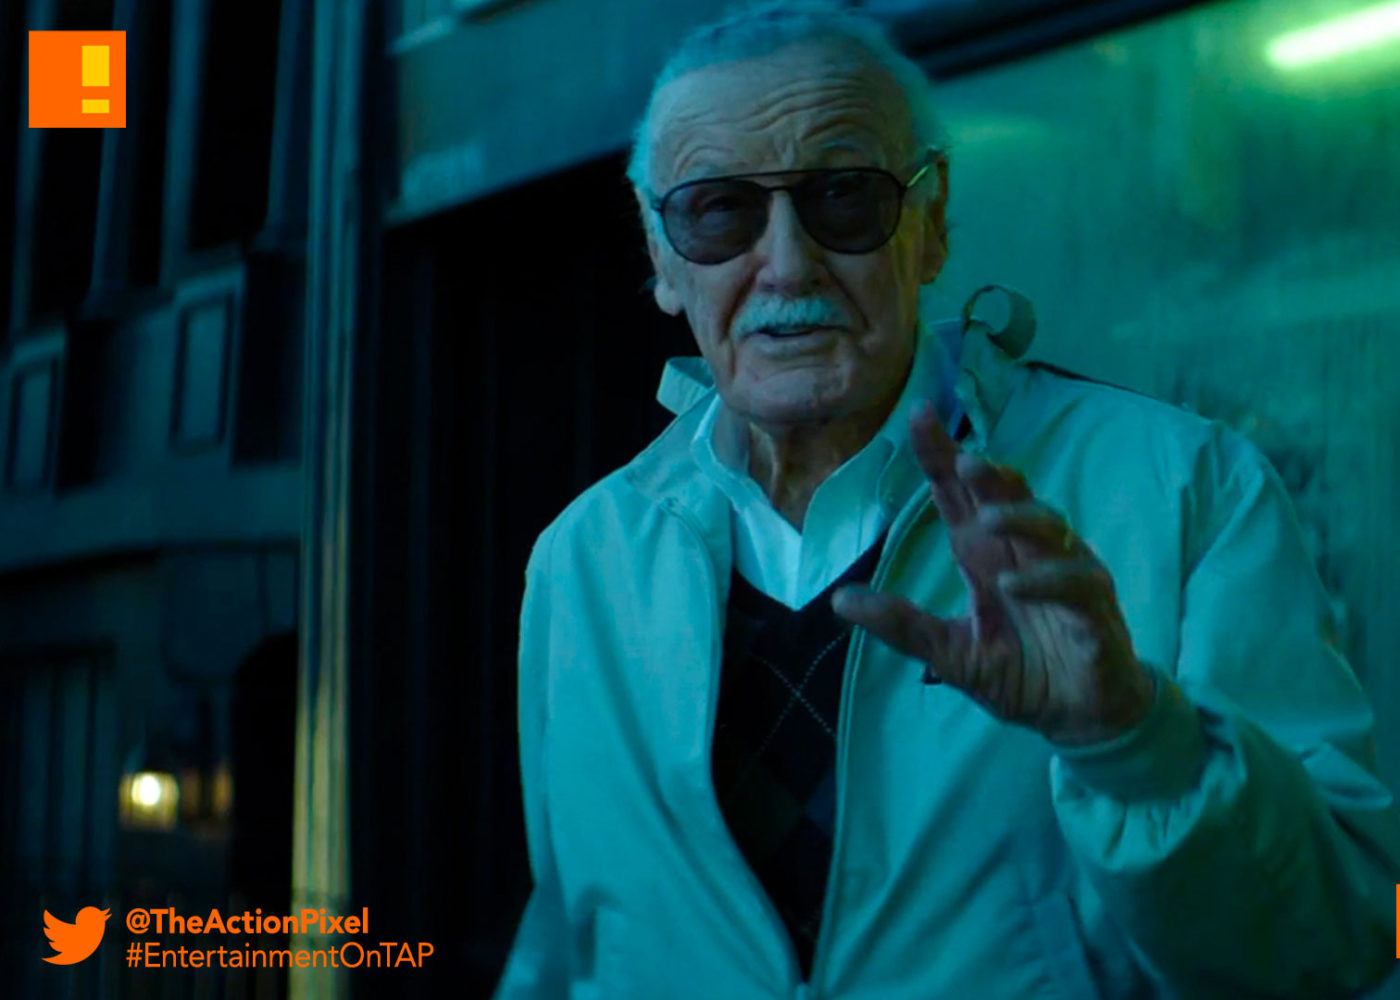 stan lee, marvel, the action pixel, entertainment on tap, netflix, marvel, punisher, jessica jones, the defenders, defenders, luke cage, iron fist,